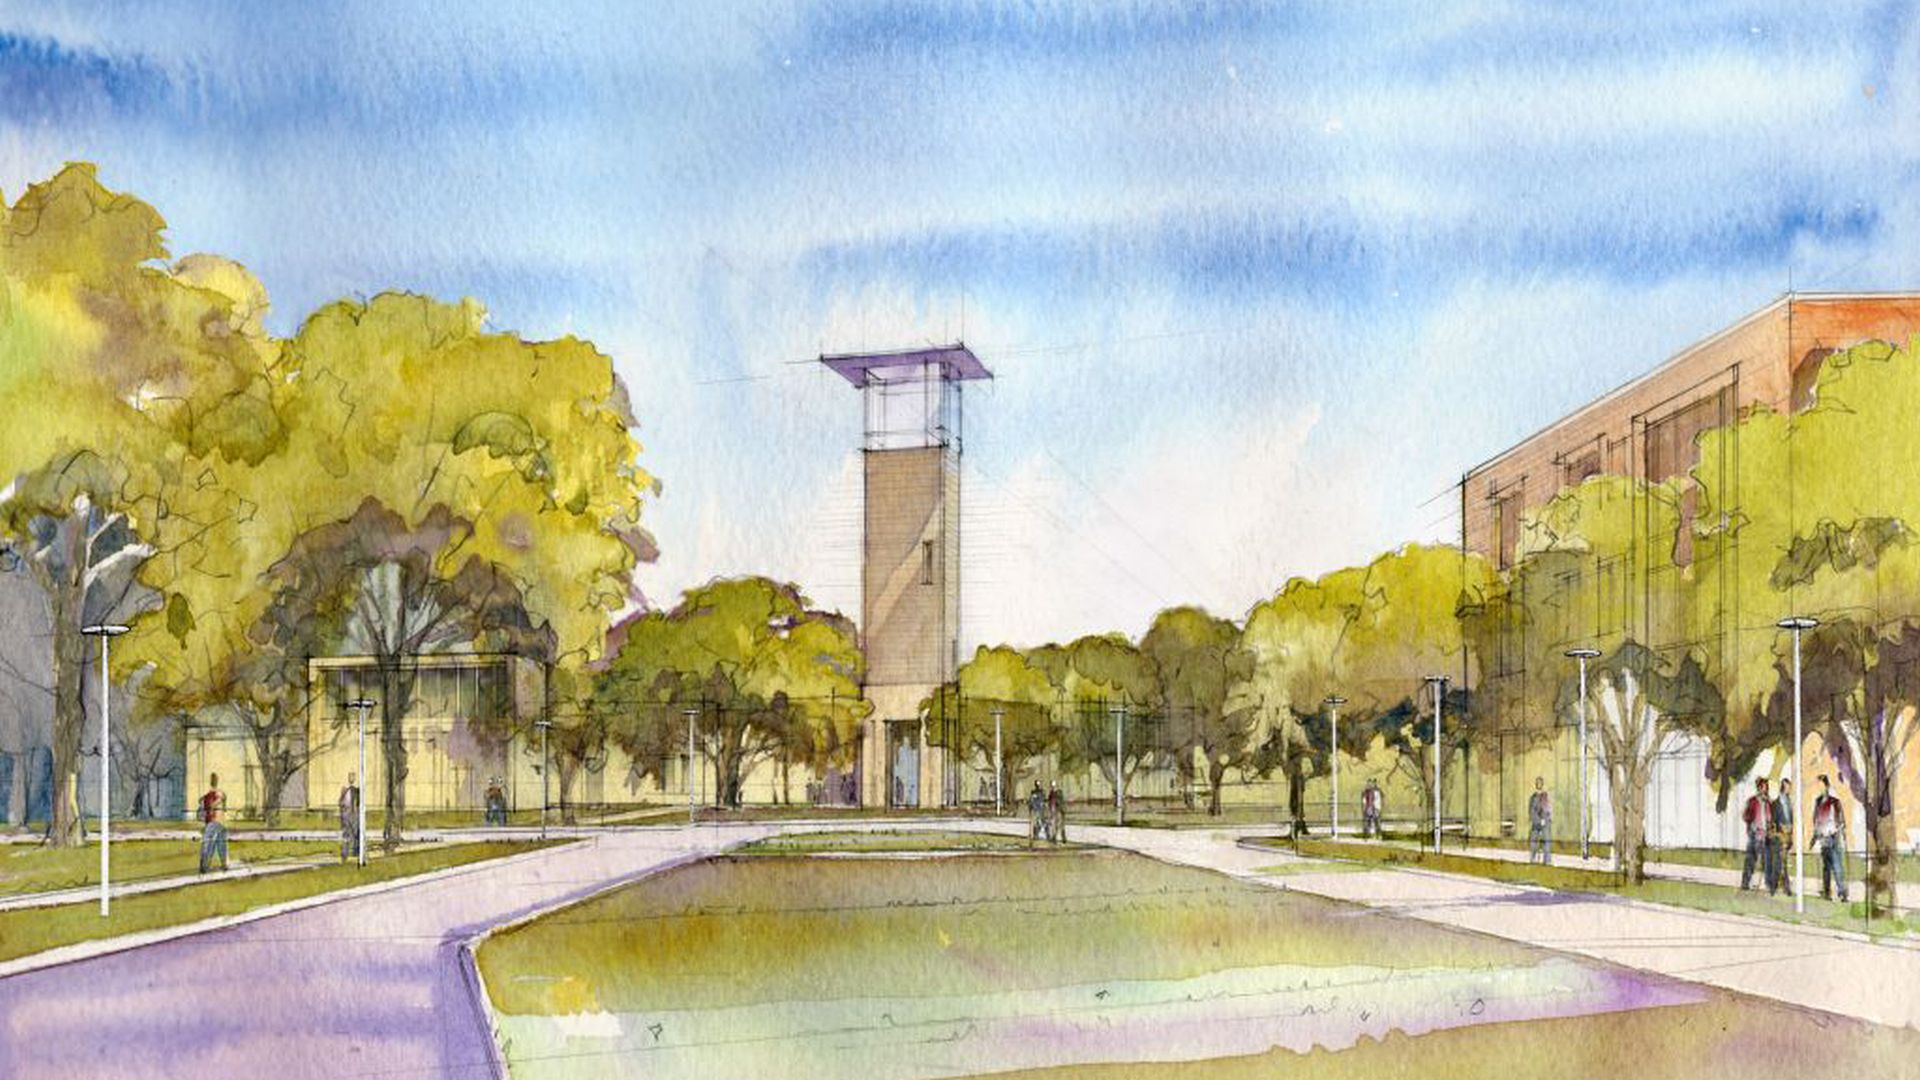 Lamar University Campus Master Plan, Beaumont, TX  Mixed Use Private Public Partnership | Student Life | Walkability